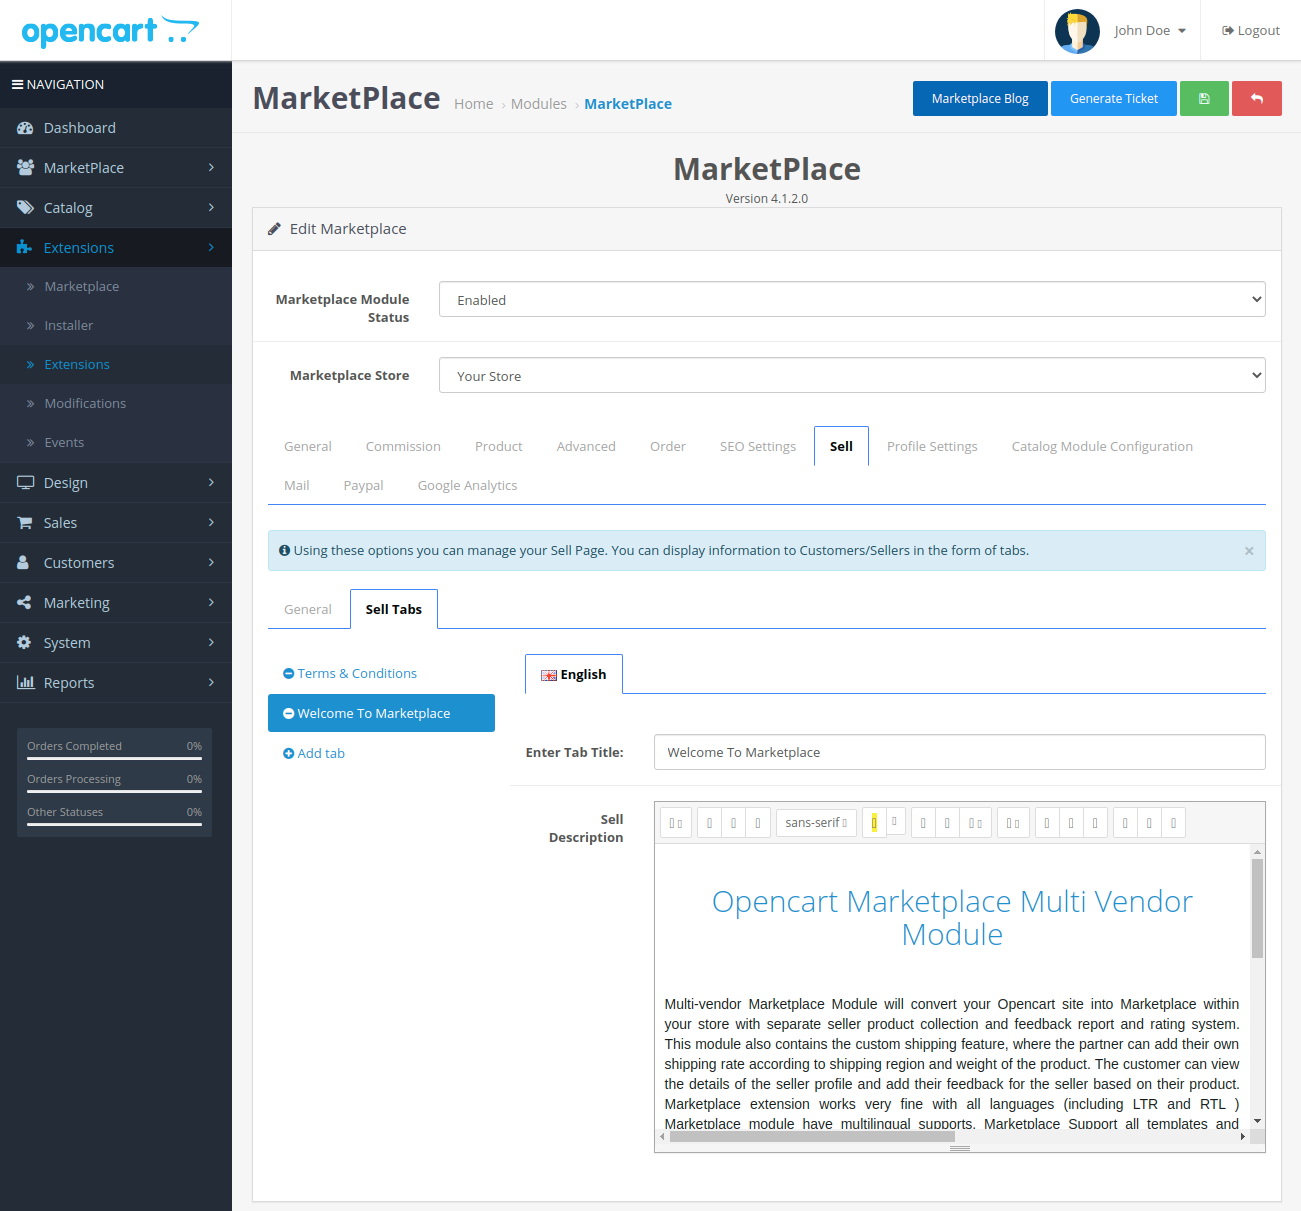 webkul-opencart-multi-vendor-marketplace-welcome-to-marketplace-section-sell-tab